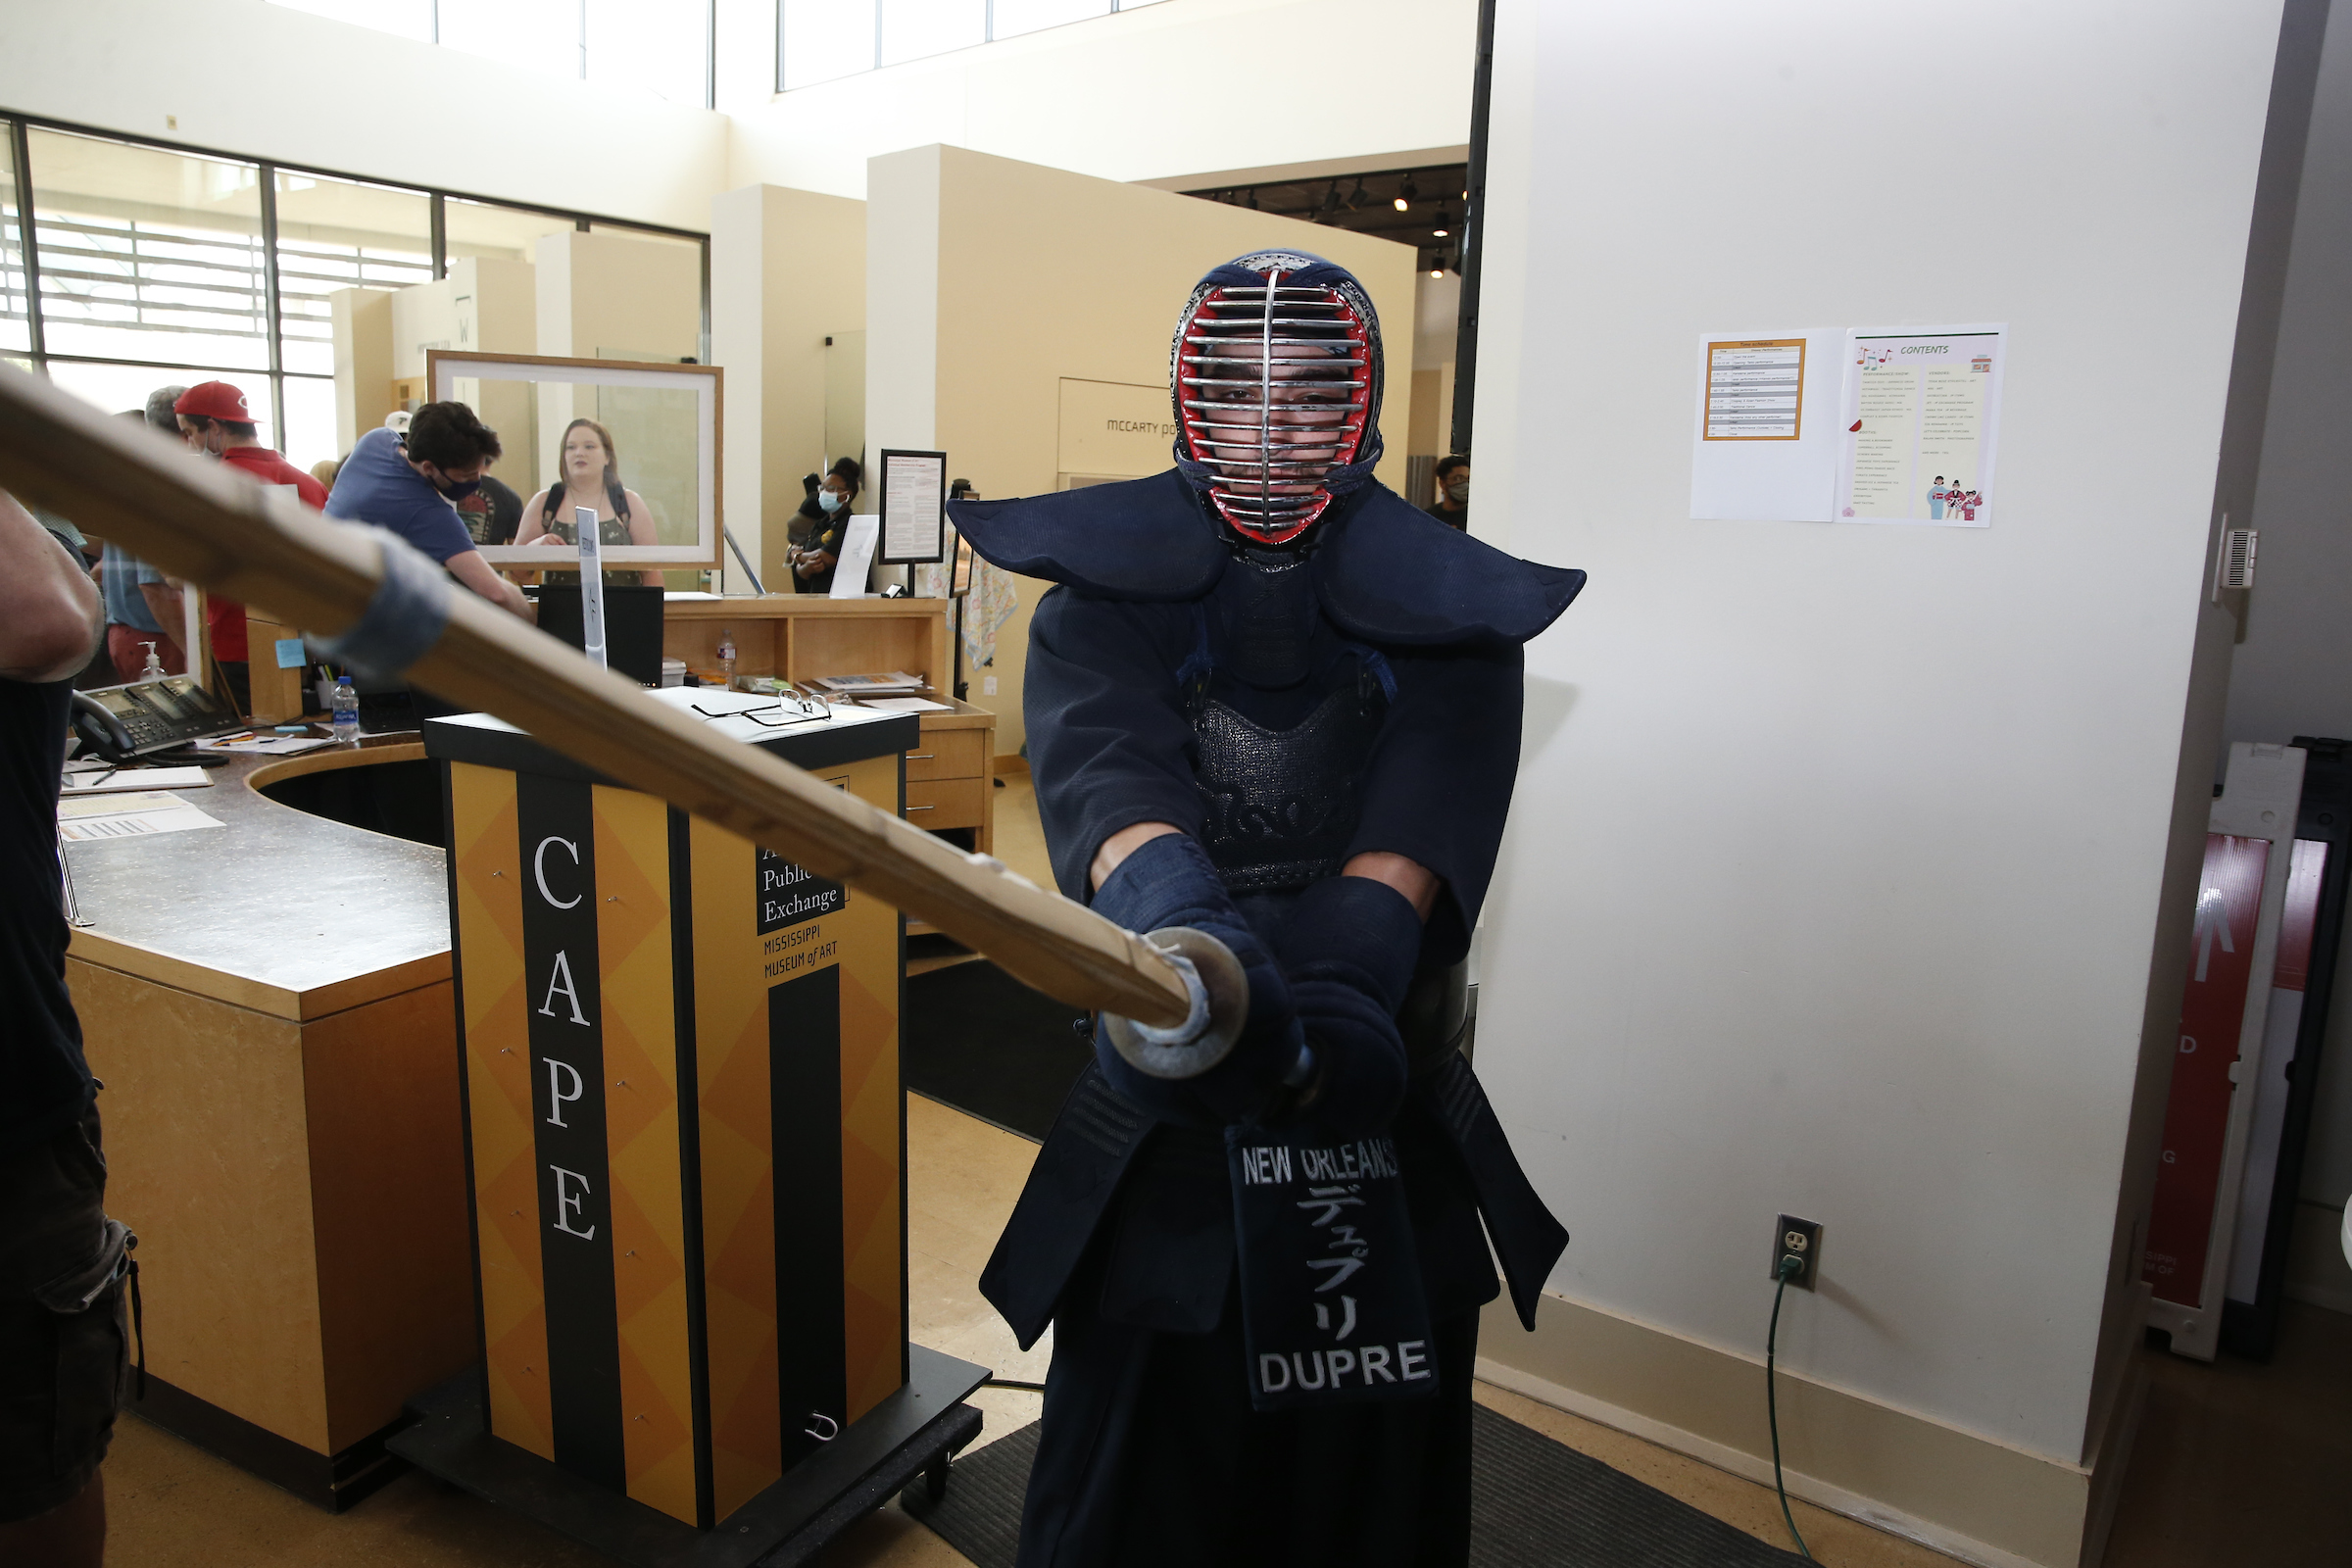 Festival attendees were treated to a variety of Japanese performances, including Kendo, a modern Japanese martial arts. (Photo by Aron Smith)